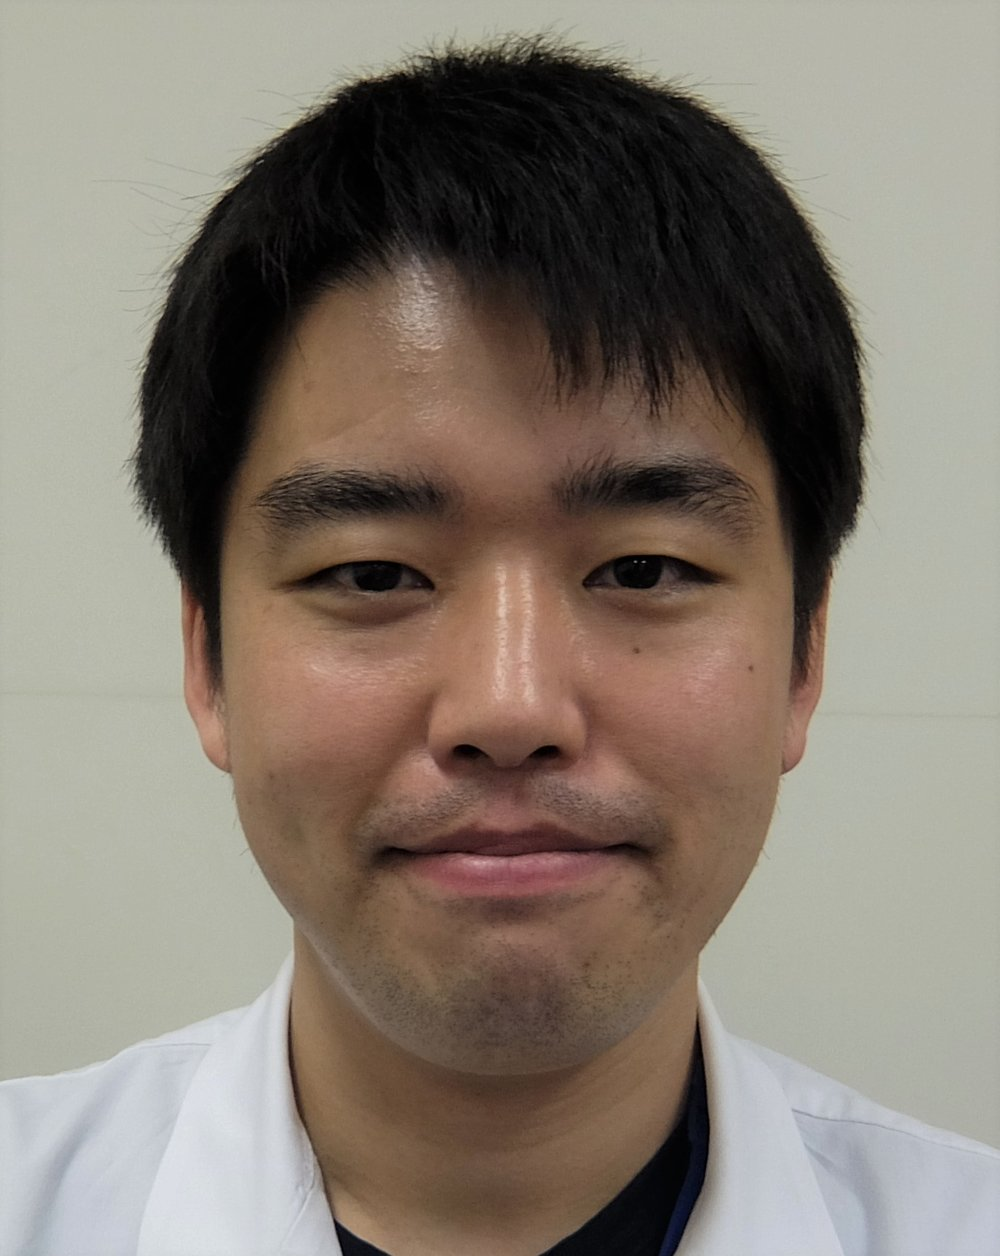 Shohei Ikeda, MD, PhD   Email Shohei   2017-Present: Assistant Professor, Dept of Cardiovascular Medicine, Tohoku Univeristy Hospital 2015-2017 Postdoctoral Fellow, Rutgers NJMS 2014-2015         Clinical Physician, Iwate Prefectural Hospital, Morioka, Iwate, Japan 2010-2014         PhD, Tohoku University Grad. Sch. of Med., Sendai, Miyagi, Japan 2007-2010         Internship, Sendai Medical Center, Sendai, Miyagi, Japan 2001-2007         MD, Faculty of Medicine, Tohoku University, Sendai, Miyagi, Japan 2010-2014         PhD in Tohoku University Grad. Sch. of Med., Sendai, Miyagi, Japan